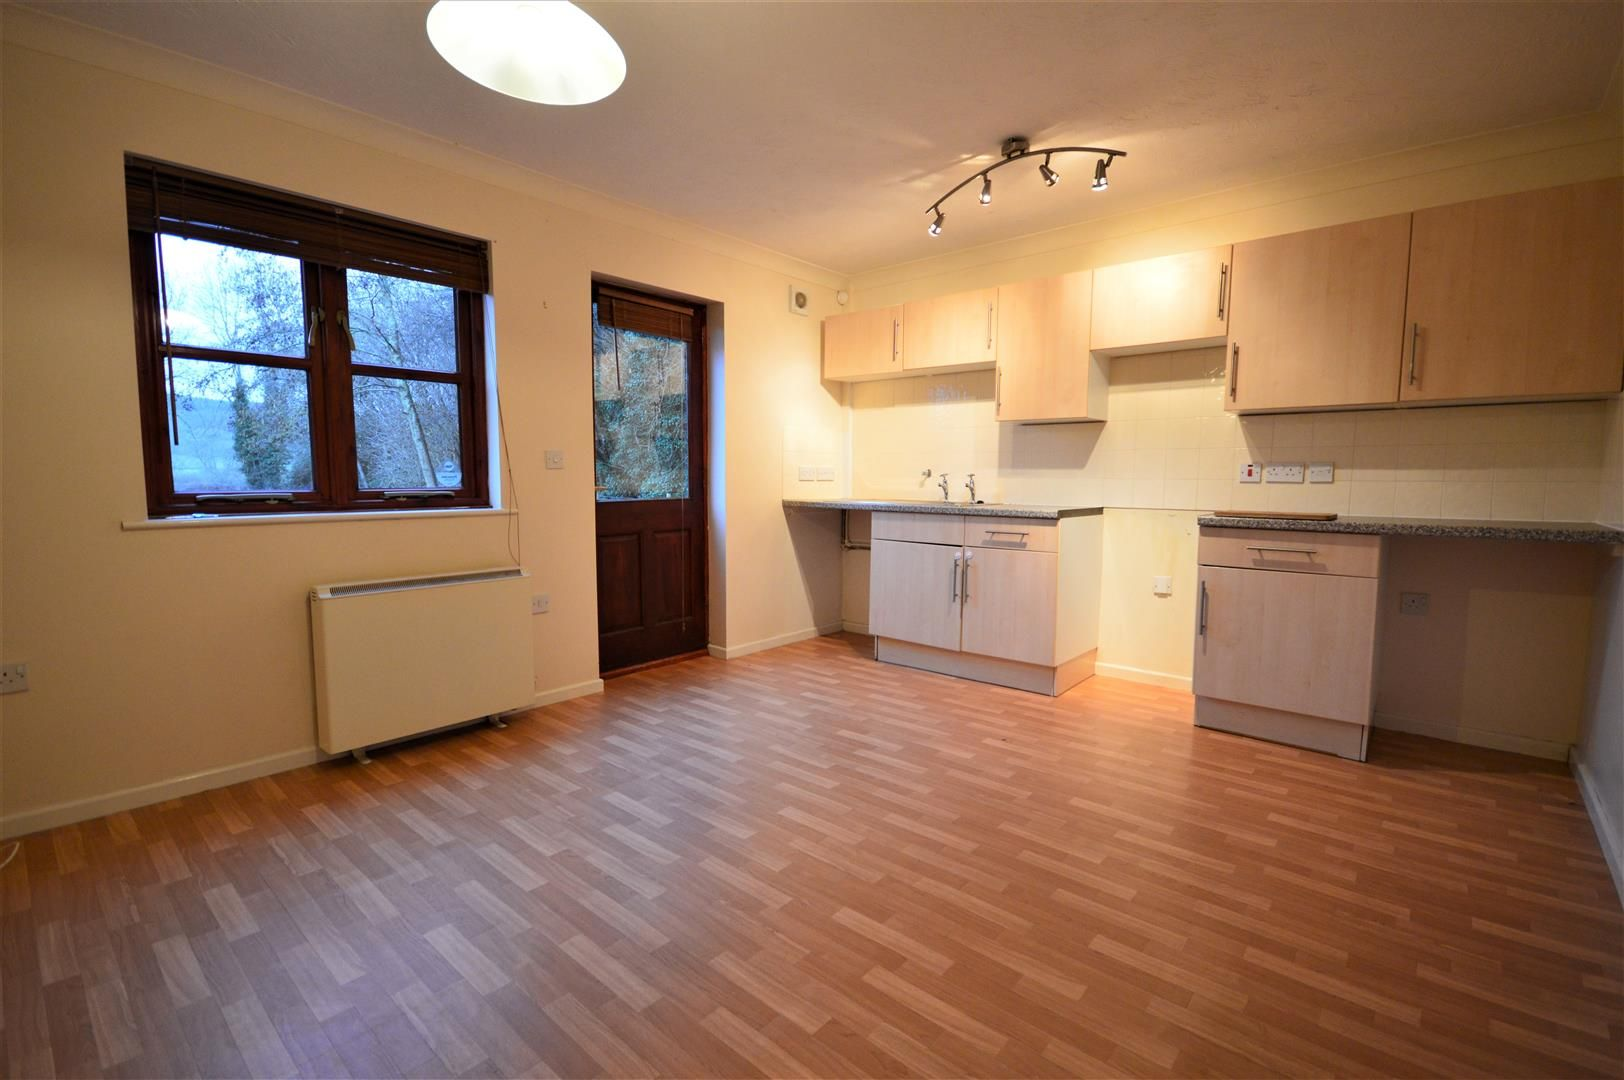 2 bed end-of-terrace to rent in Wigmore 1